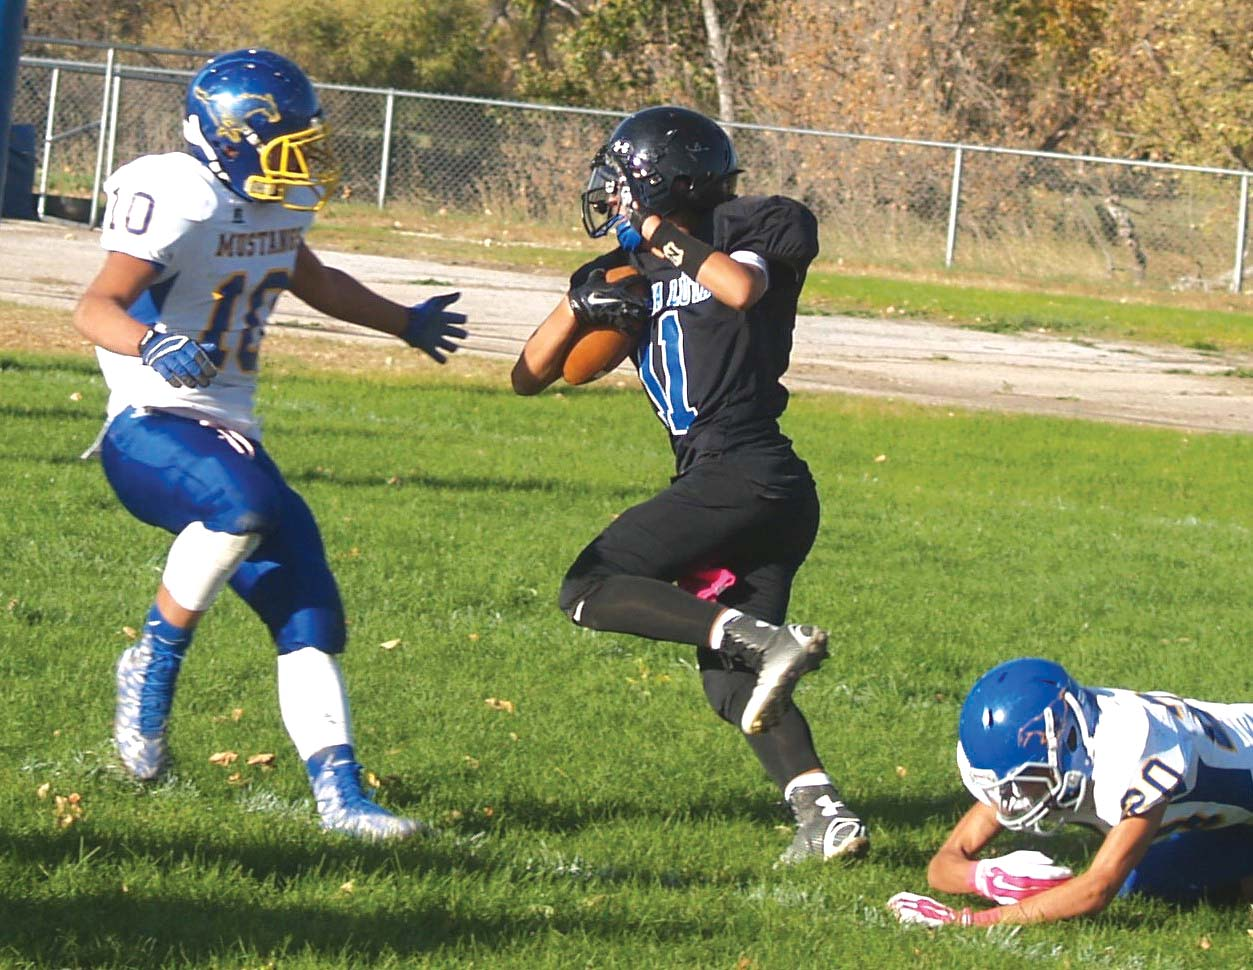 Native Sun News: Pine Ridge football teams battle in 'ugly' game